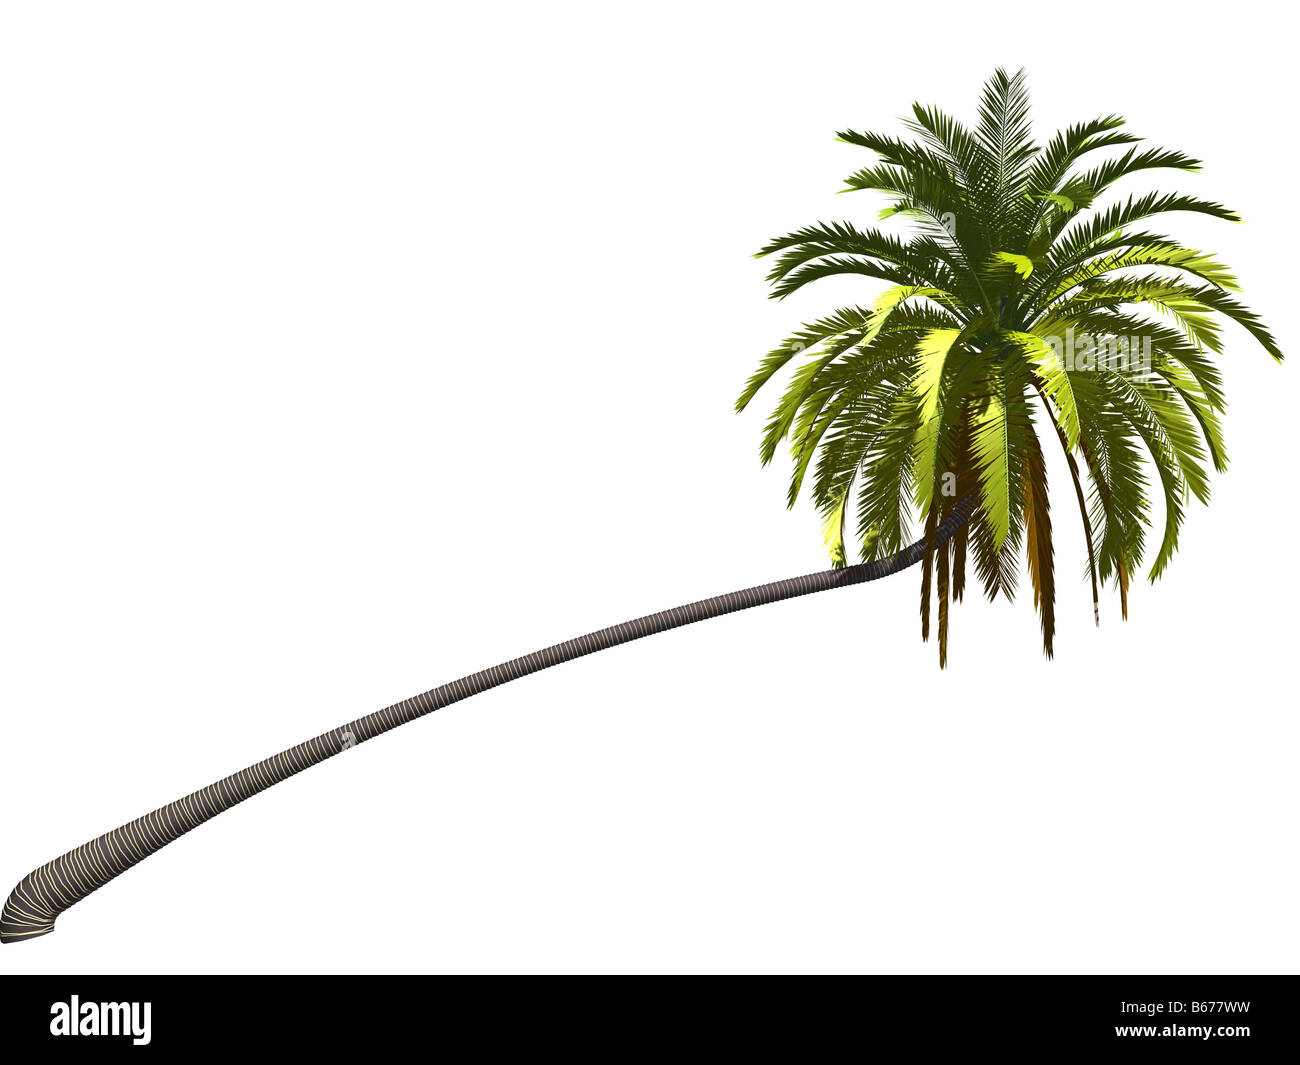 a palmtree isolated on white background - Stock Image